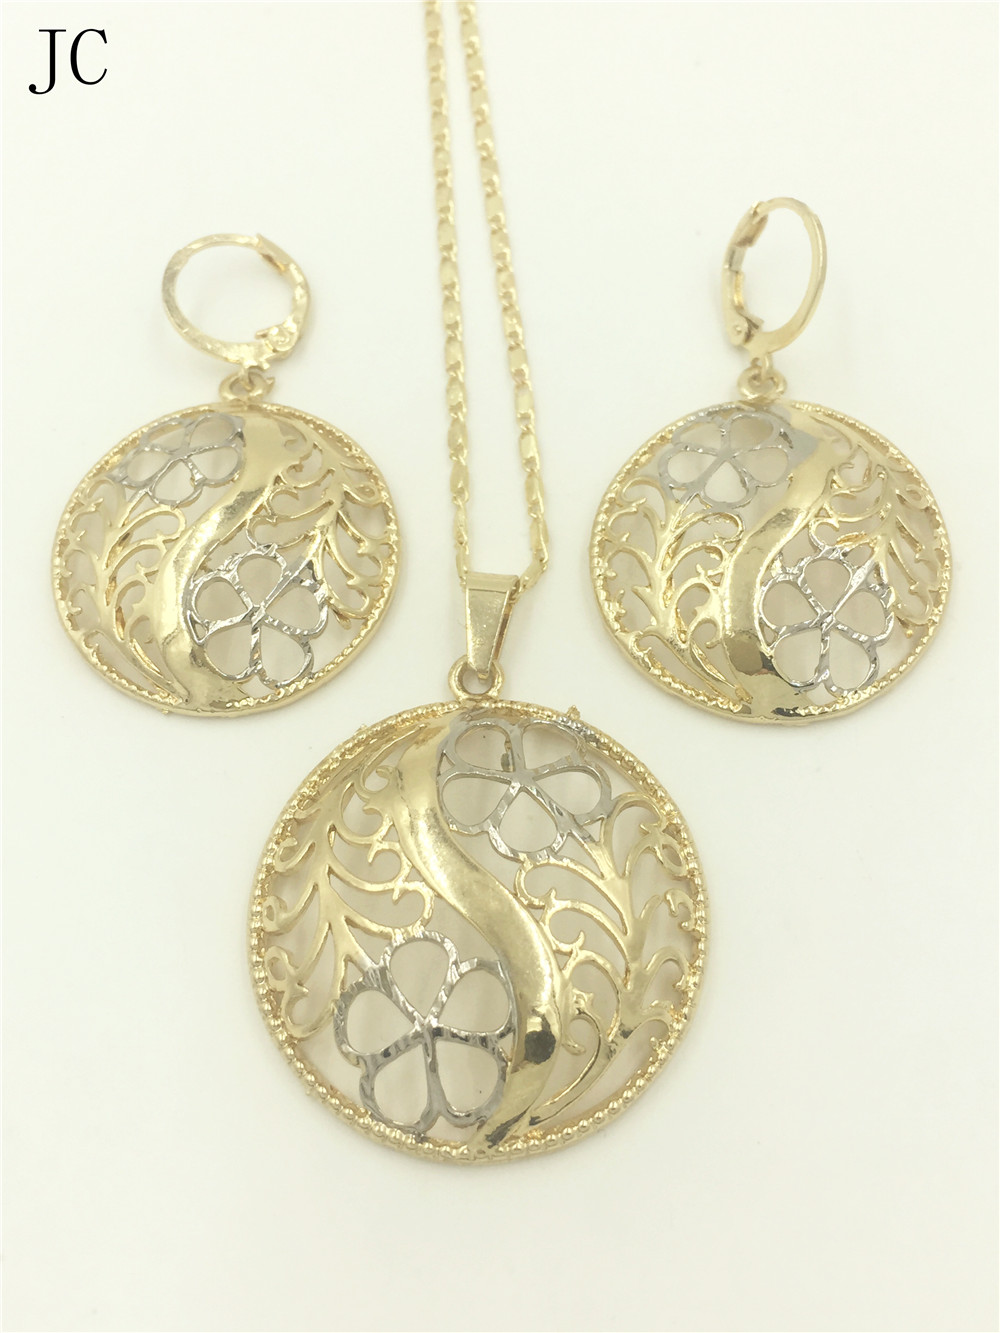 pendants diamond pendant cid gold jewellery design product facetzinspire large